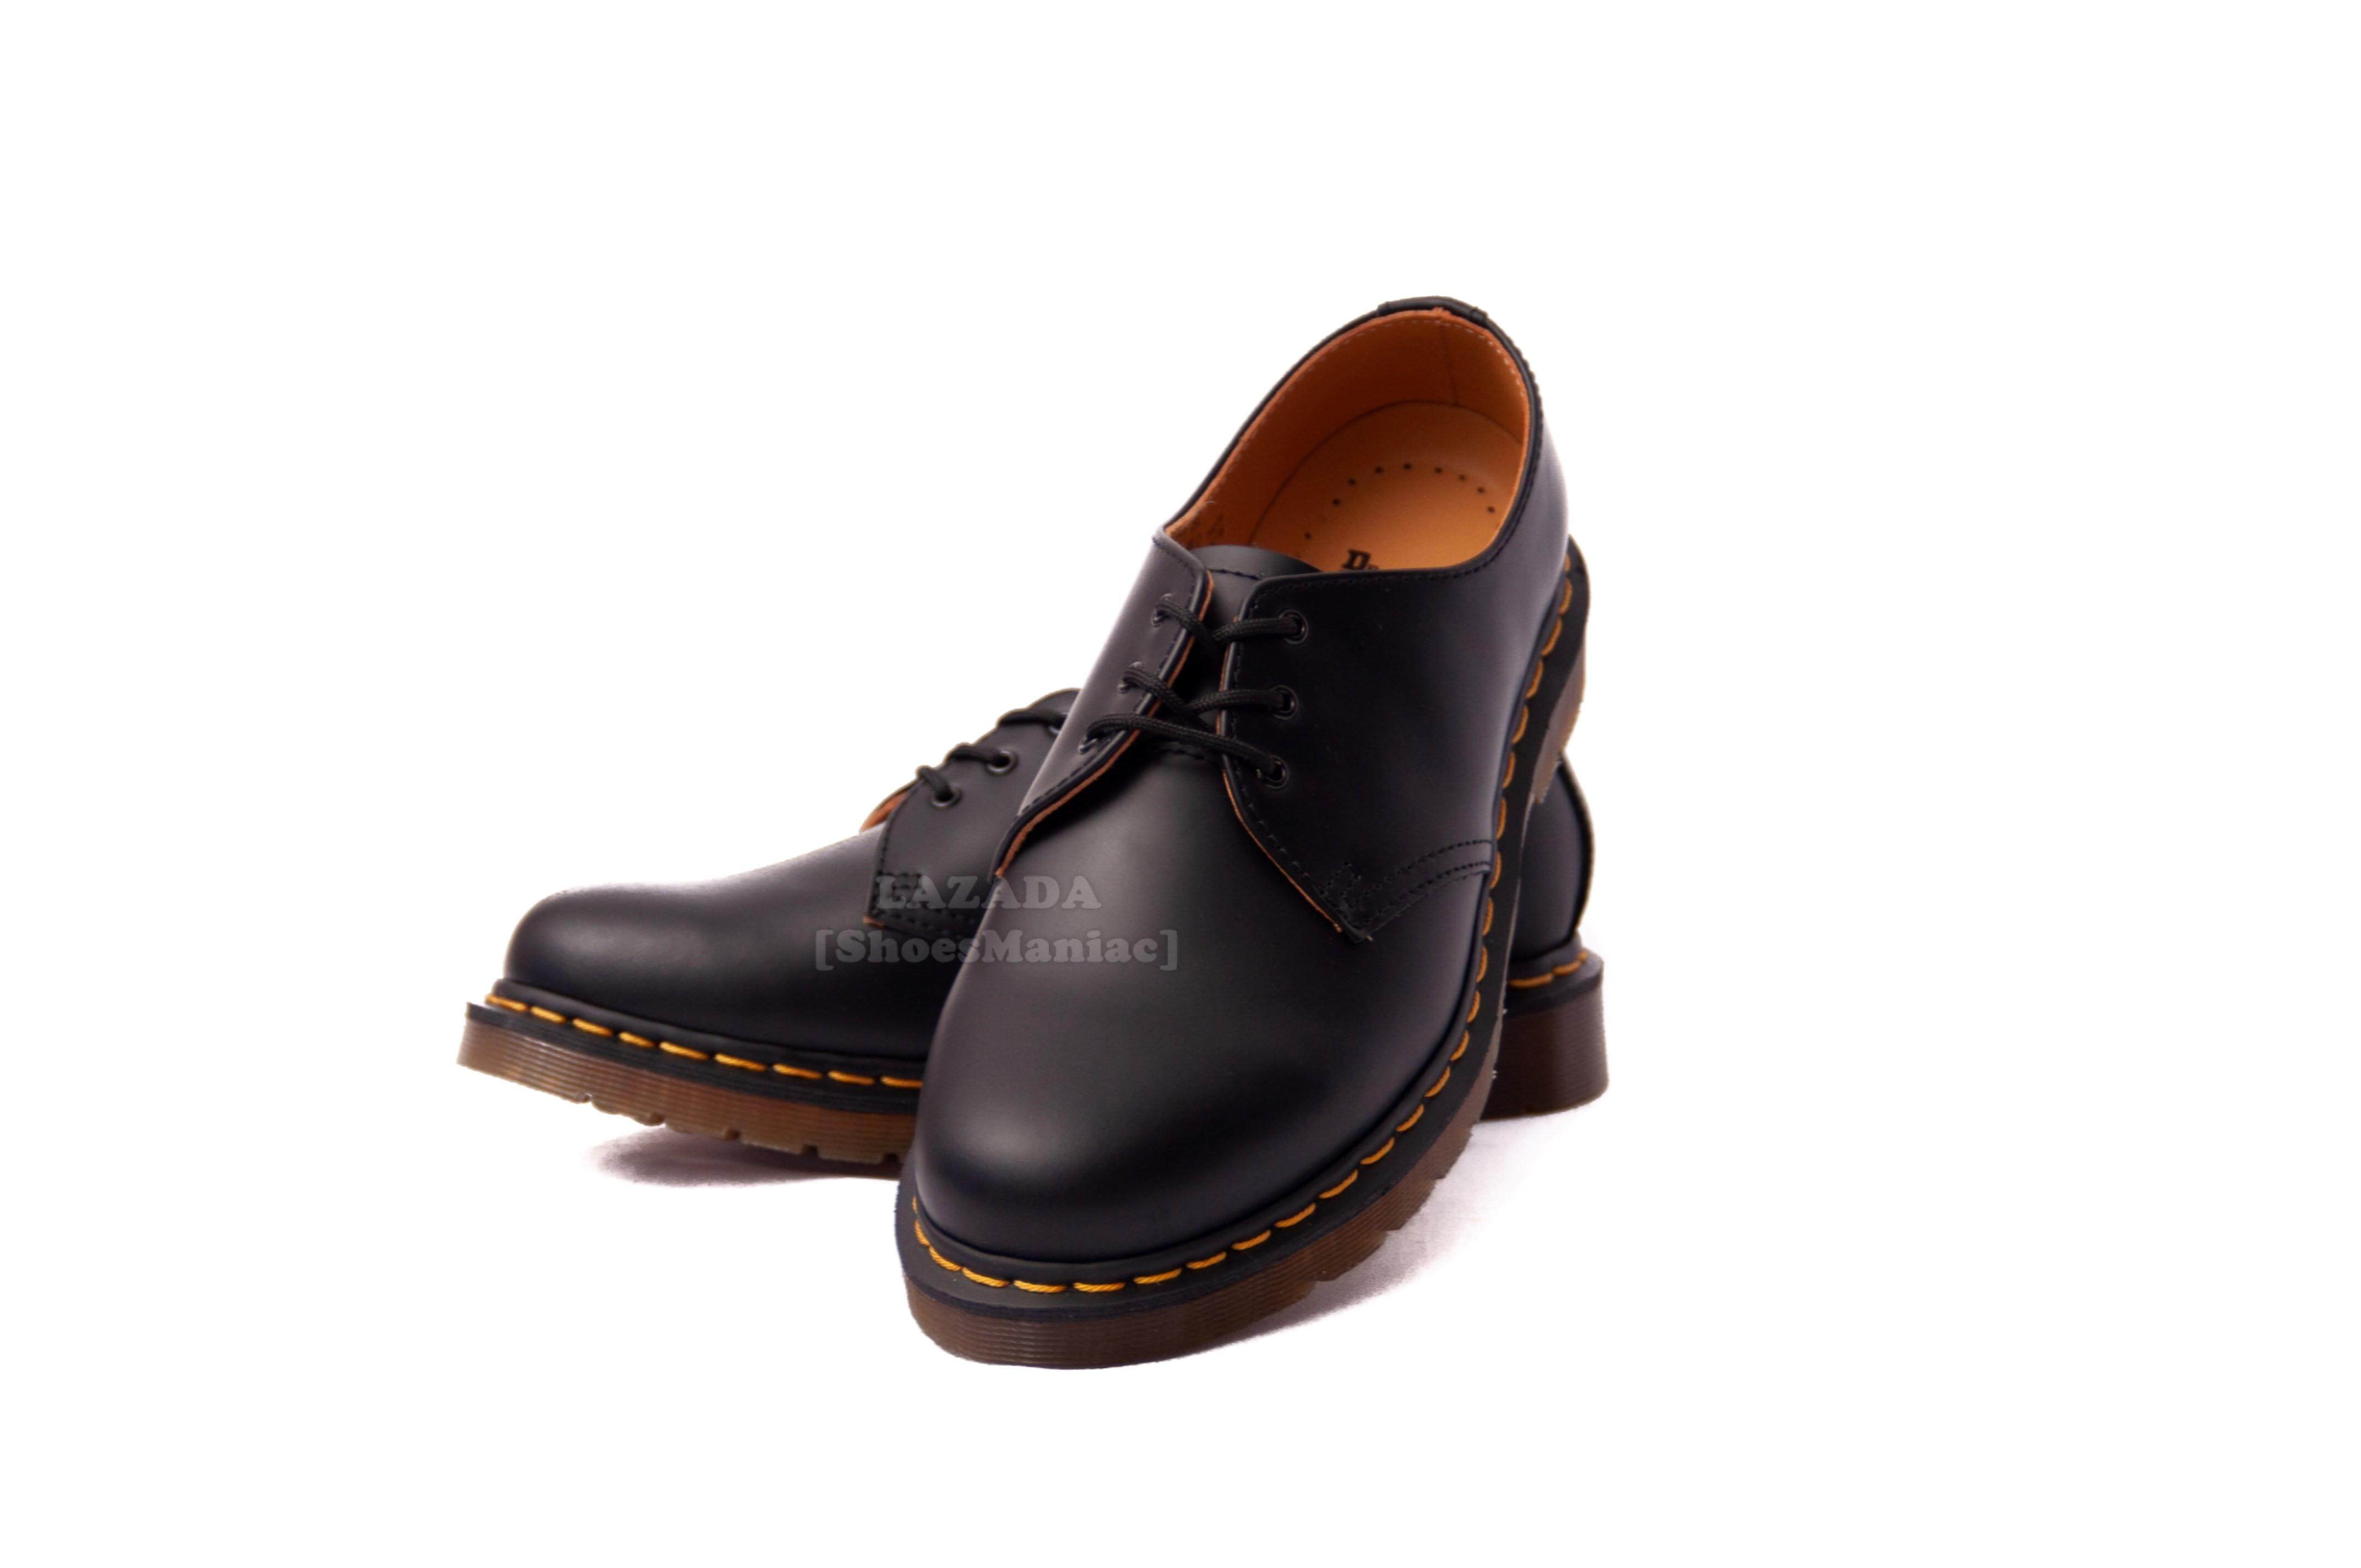 a088a437c0218 Dr Martens - Buy Dr Martens at Best Price in Malaysia | www.lazada ...